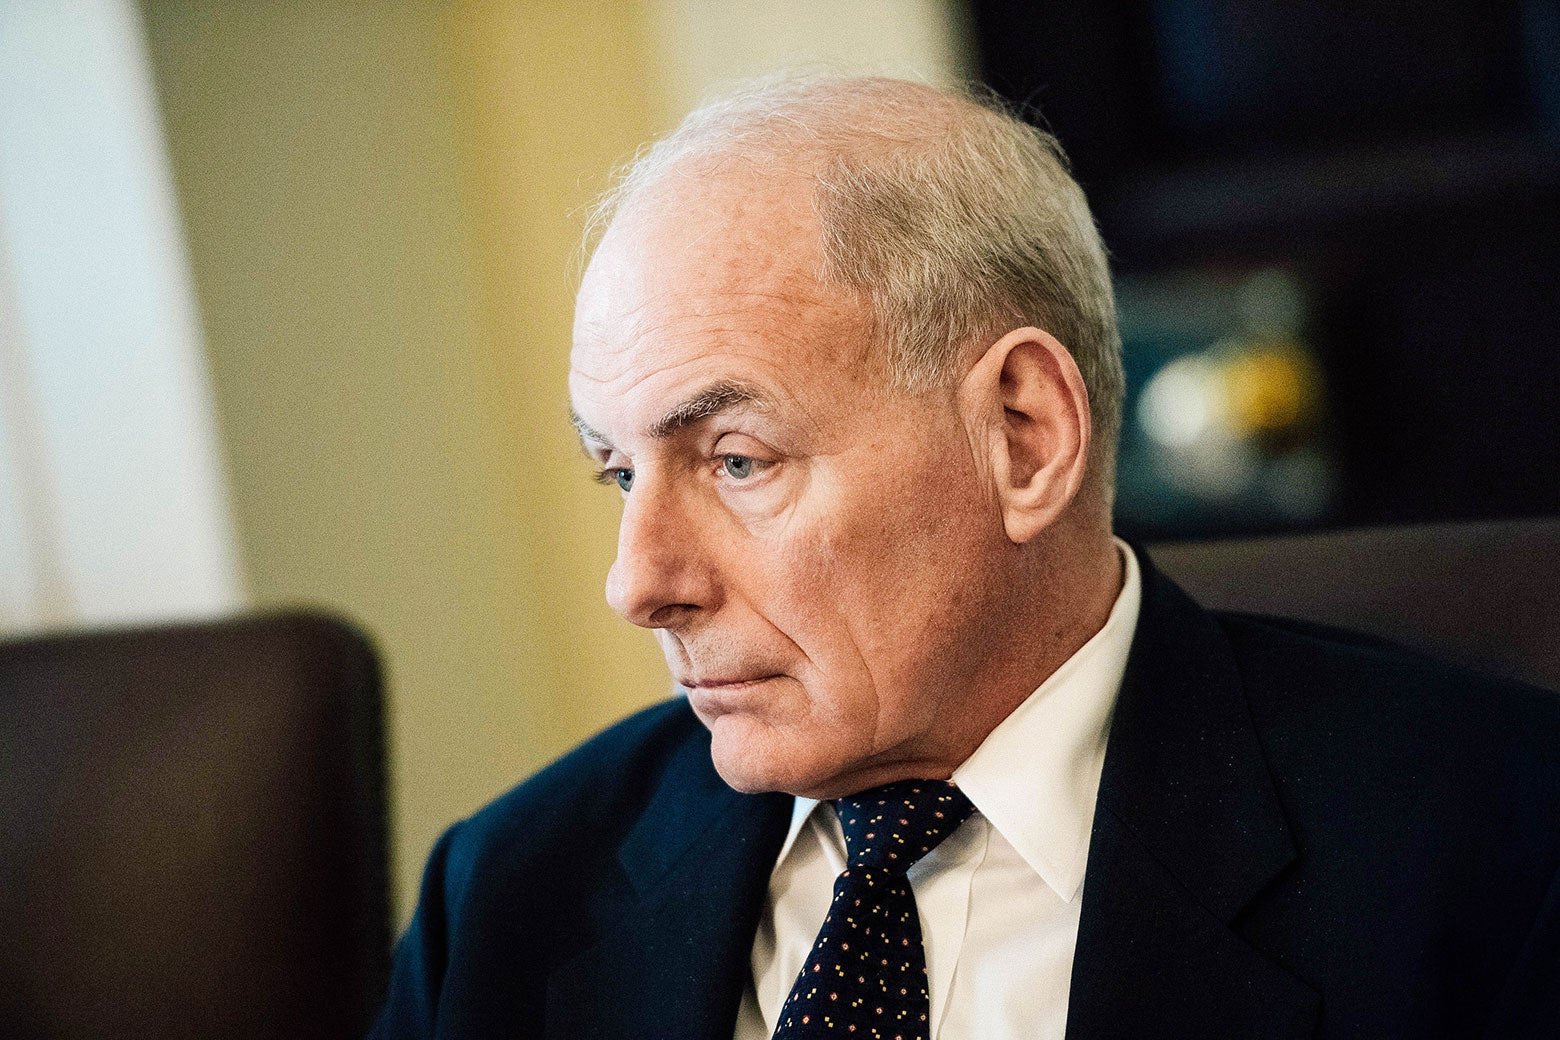 White House Chief of Staff John Kelly attends a Cabinet meeting with President Donald Trump at the White House on Nov. 20.